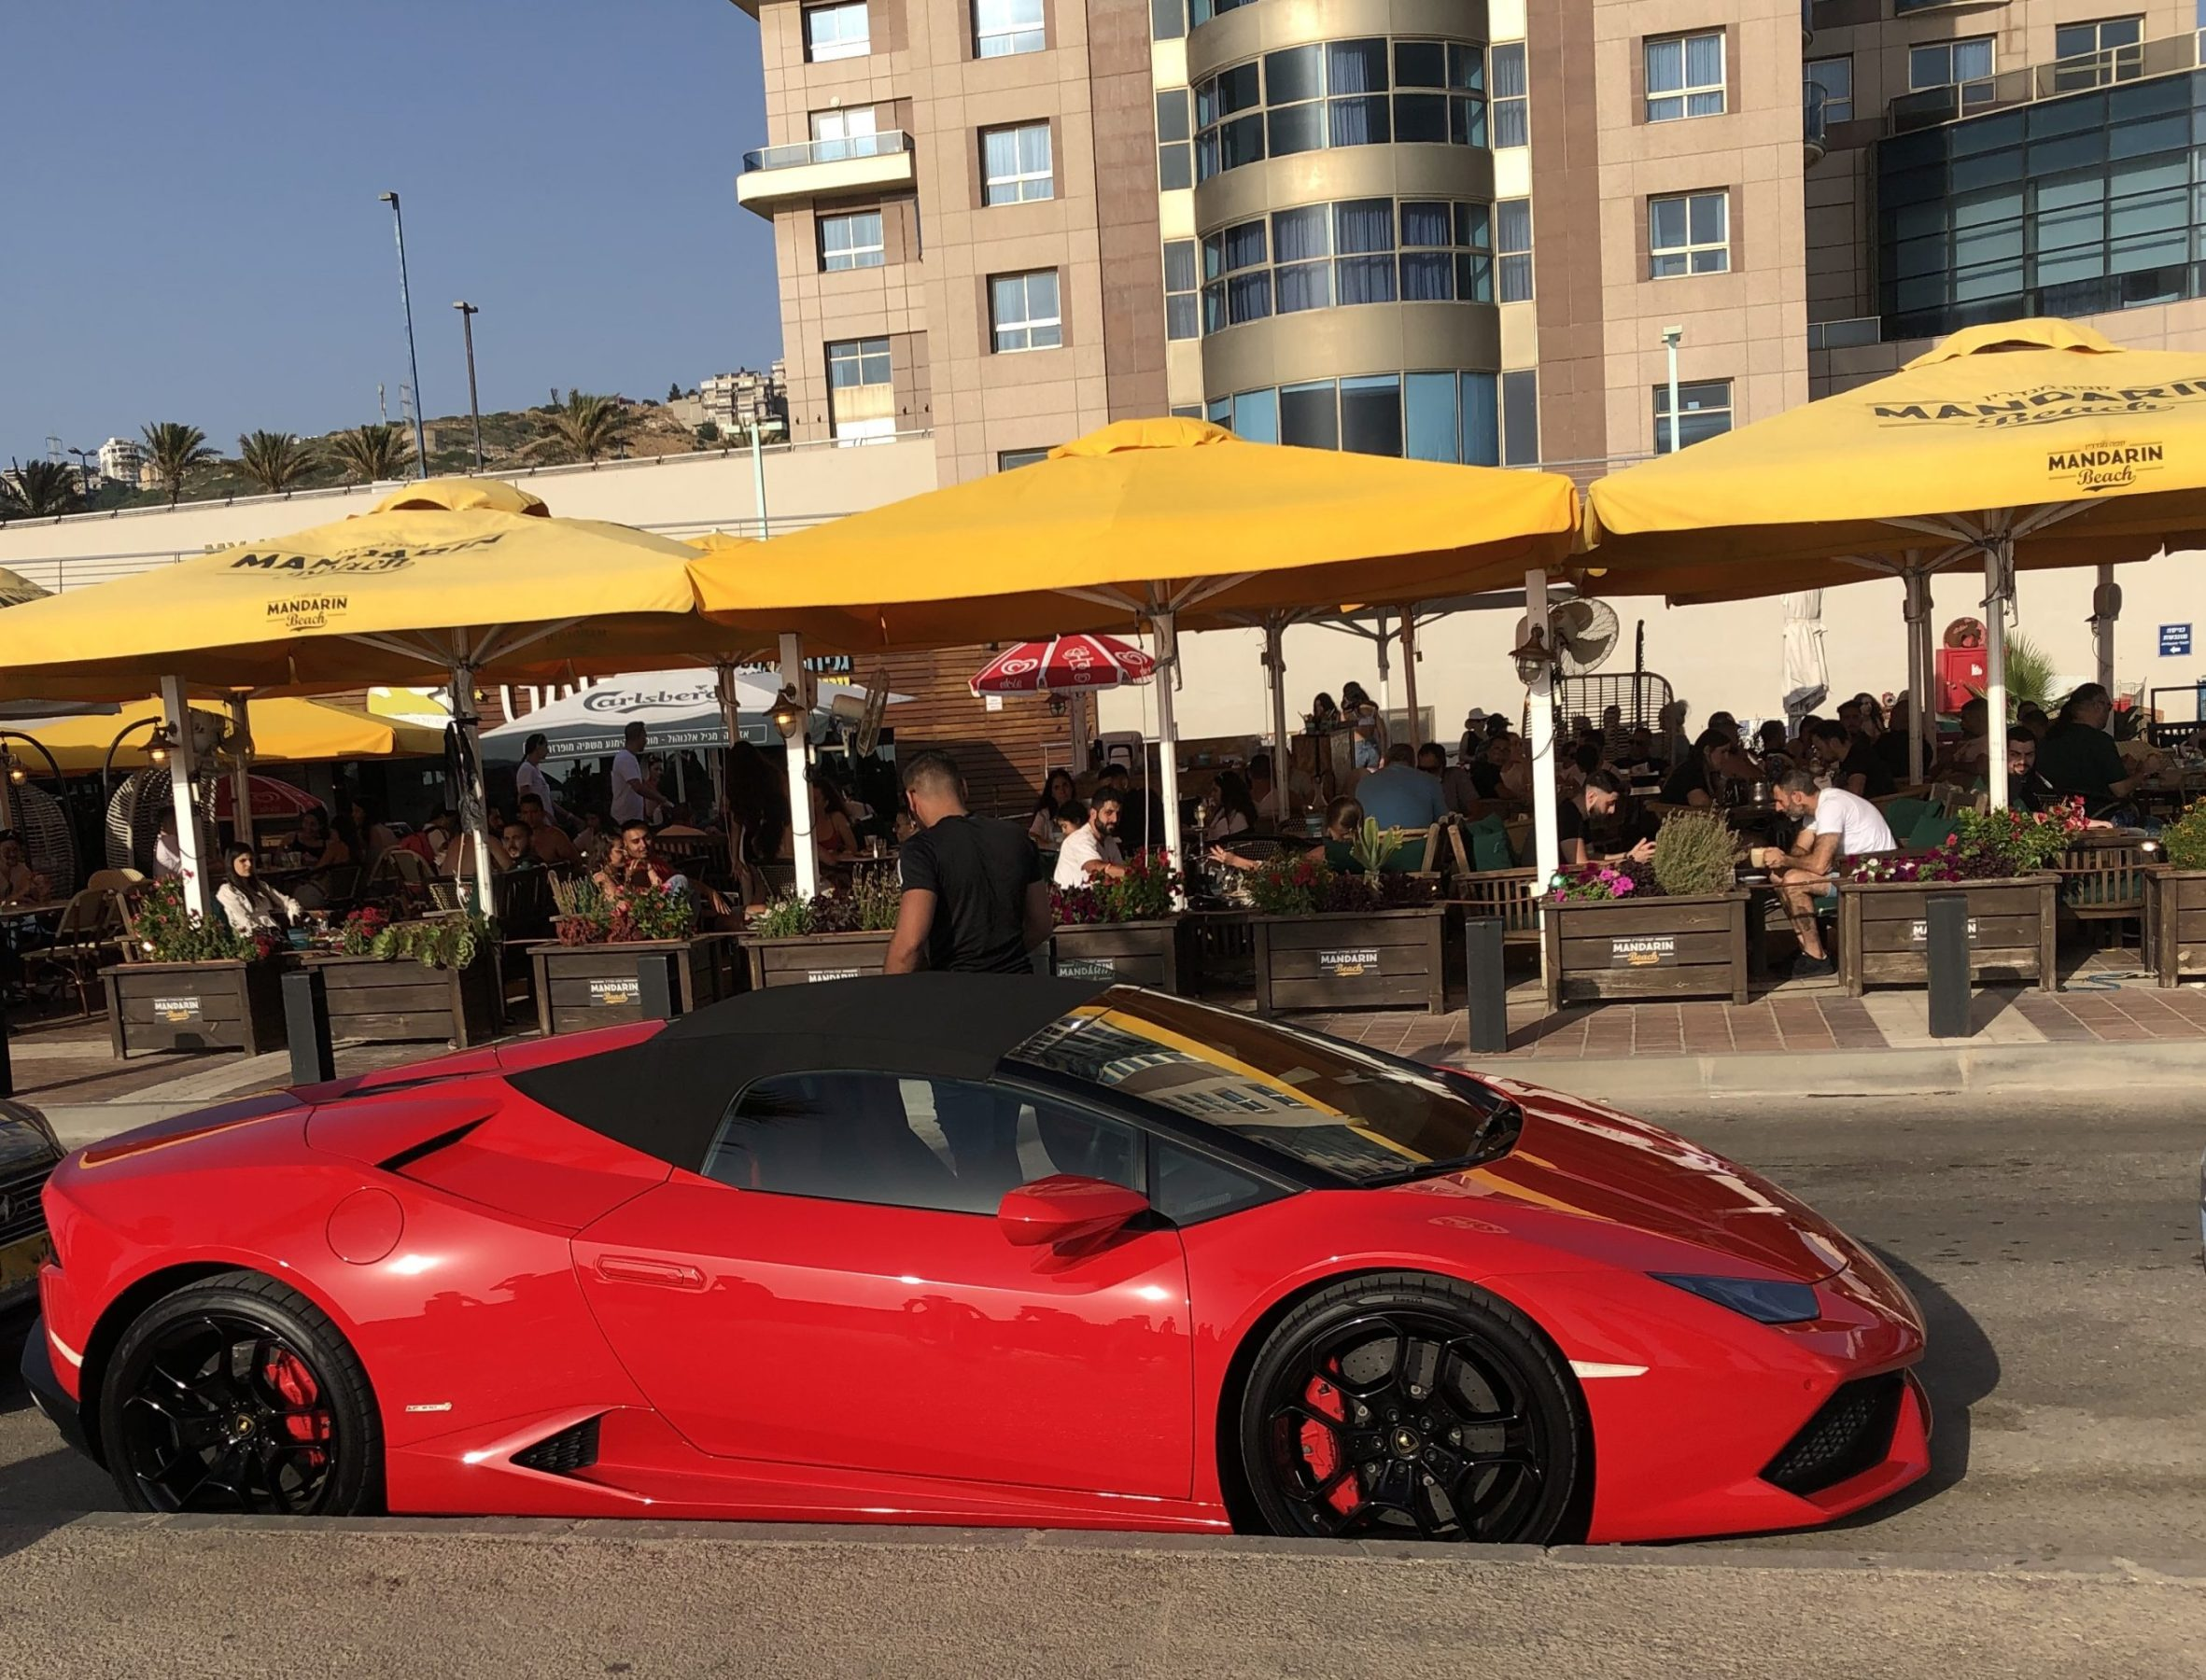 Luxury Cars Becoming a Common View in Israel